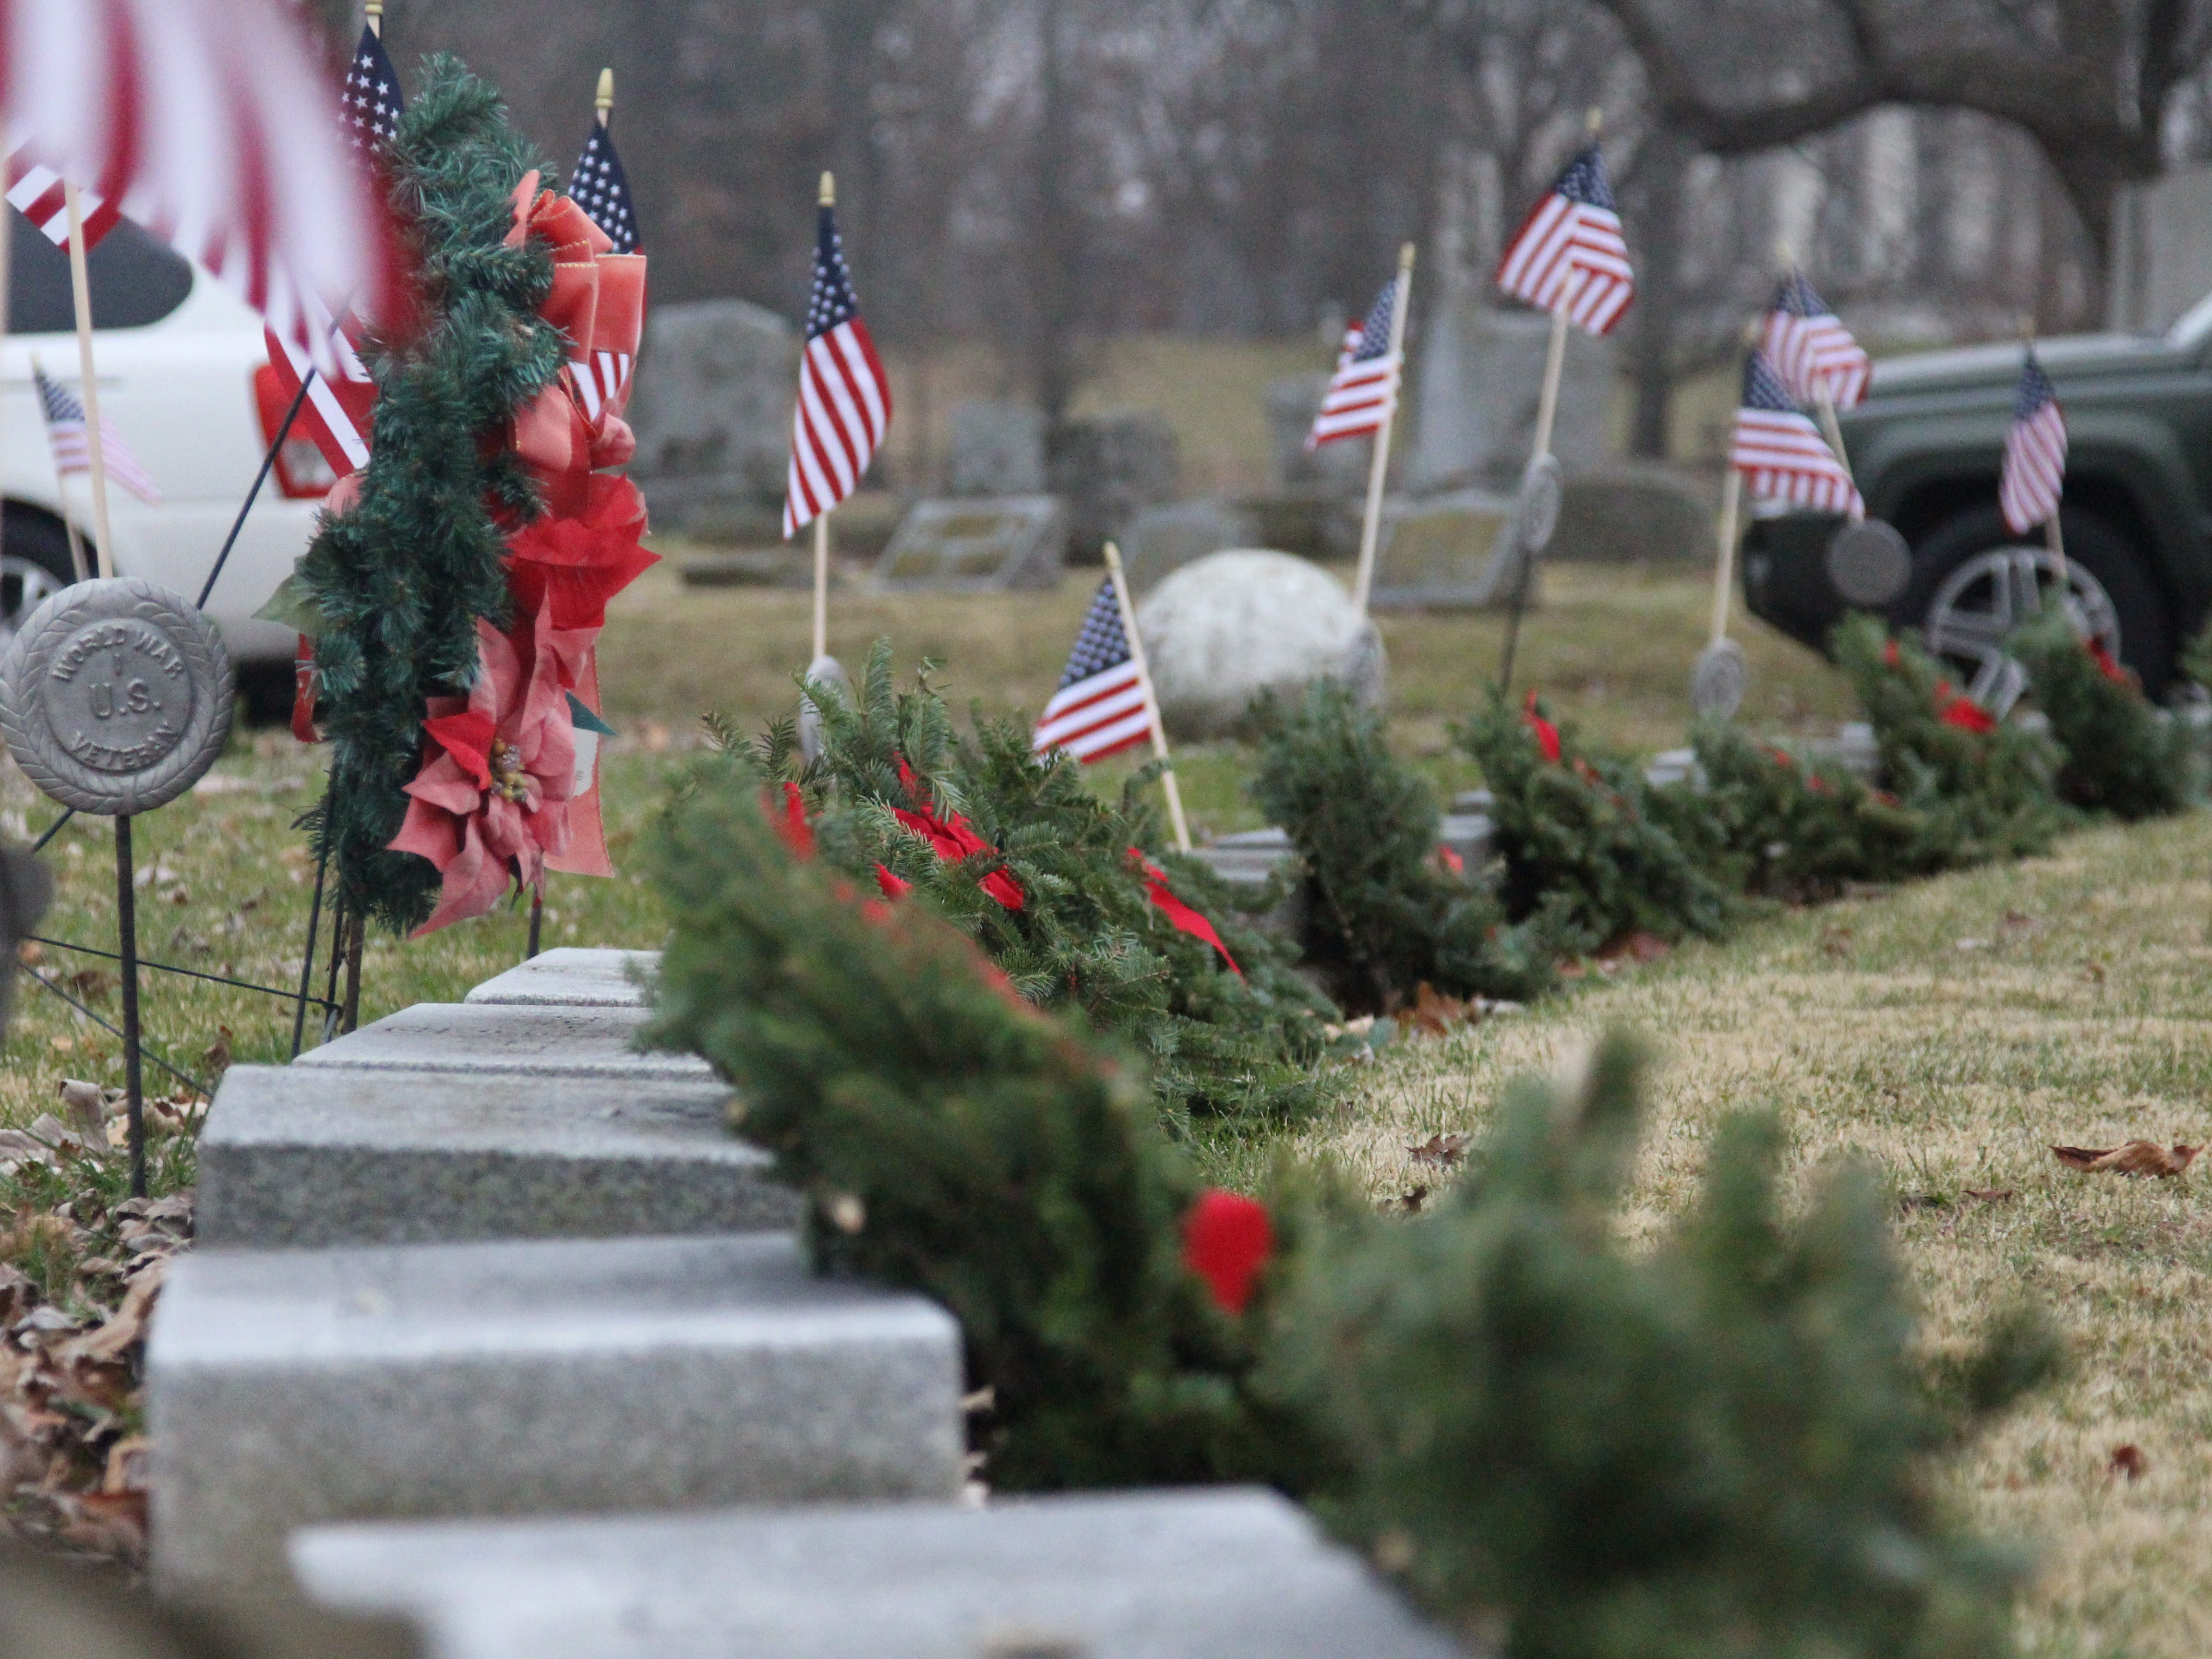 Wreaths lay on the graves of veterans Saturday in Marion Cemetery. Boy Scout Troop 46 in Marion was among the volunteers to place the wreaths on their graves as part of Wreaths Across America, a nationwide effort to honor veterans during the holiday season.